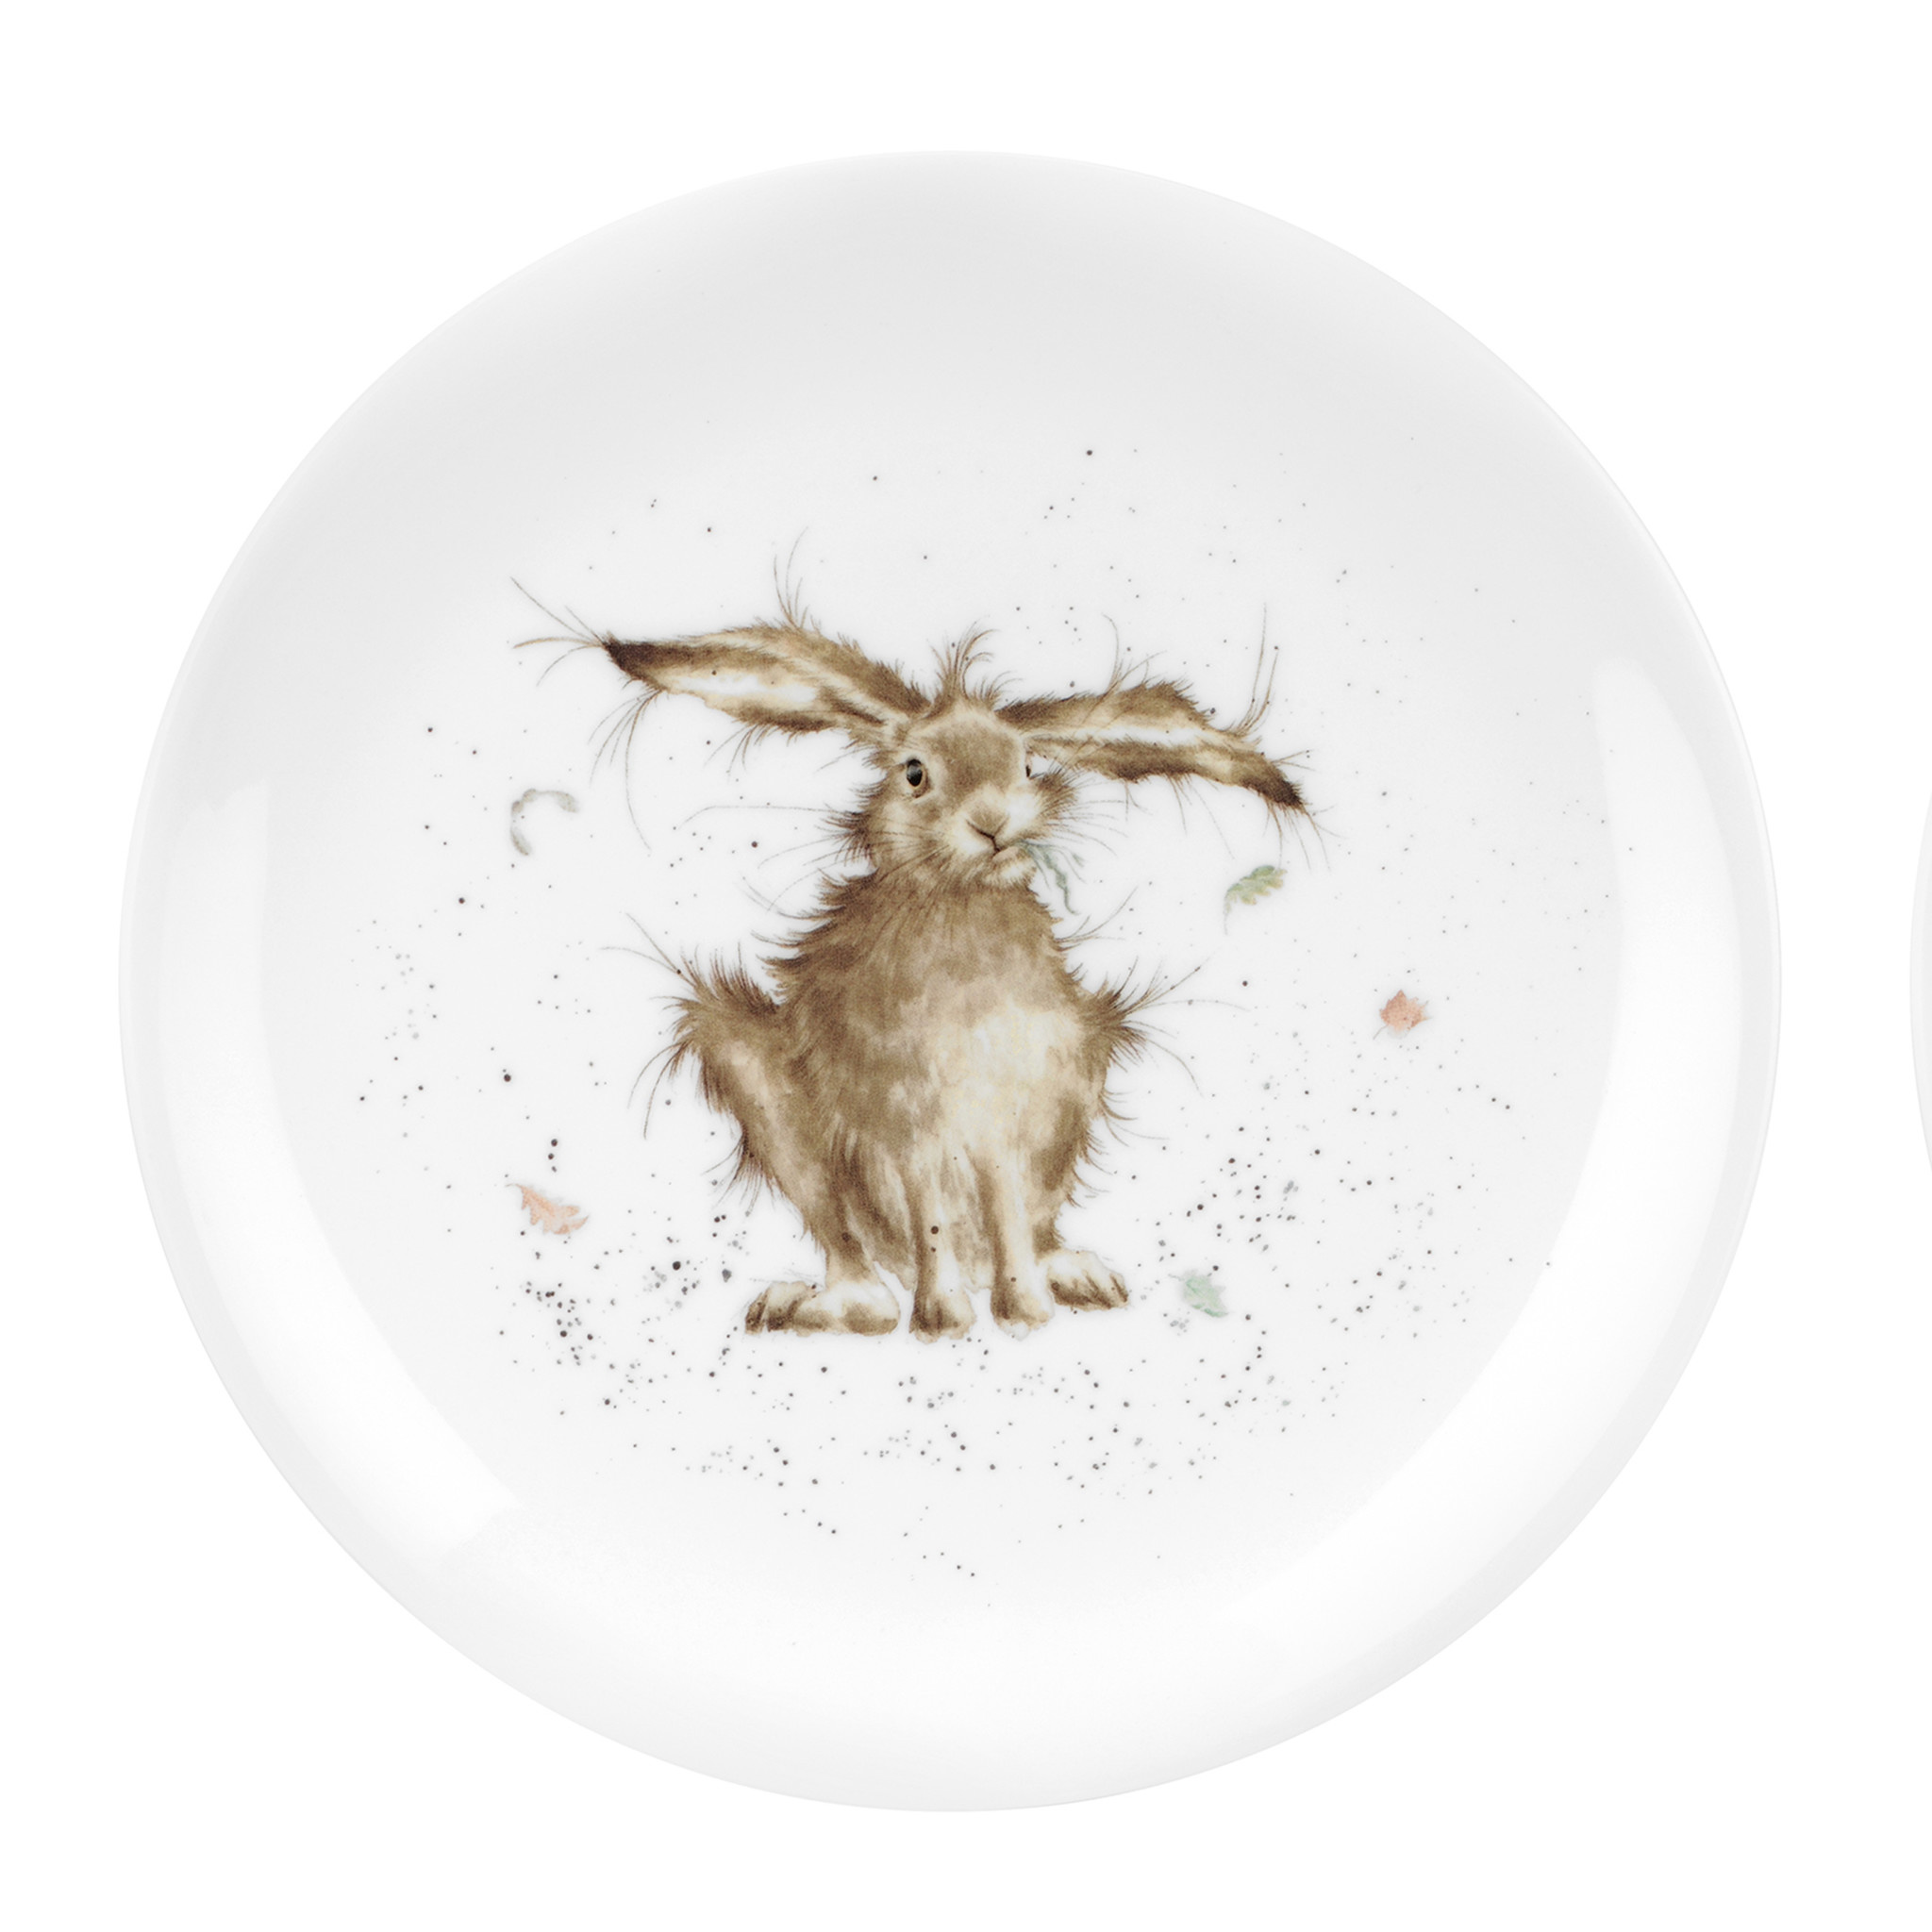 Wrendale Designs 'Hair Brained' Plate